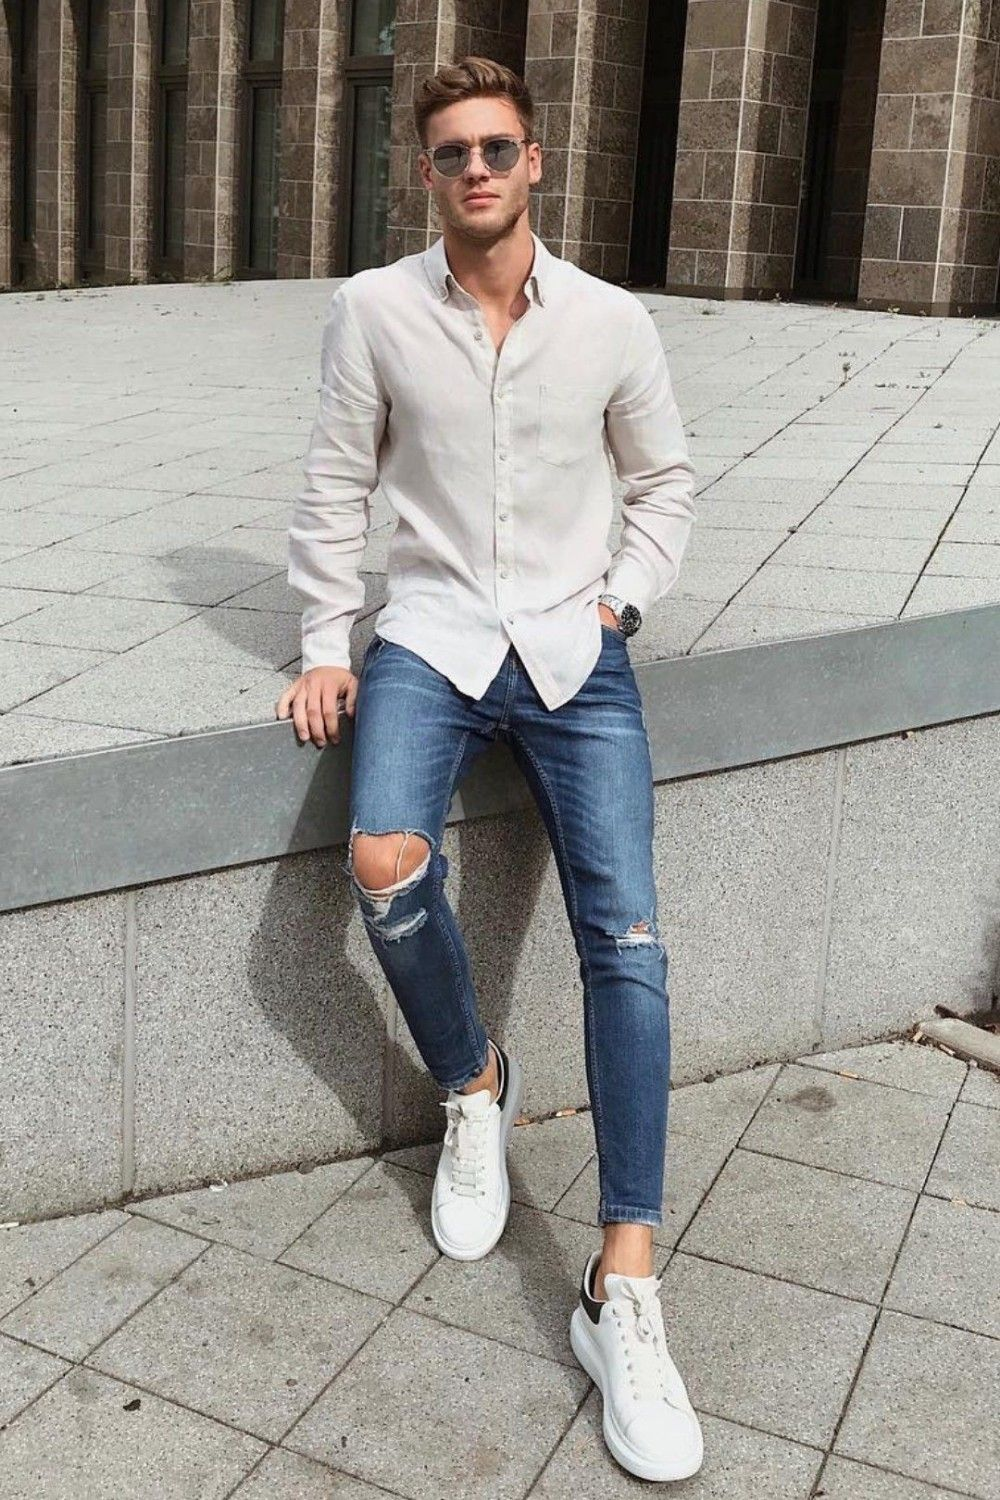 Ripped jeans are quite suitable for casual style